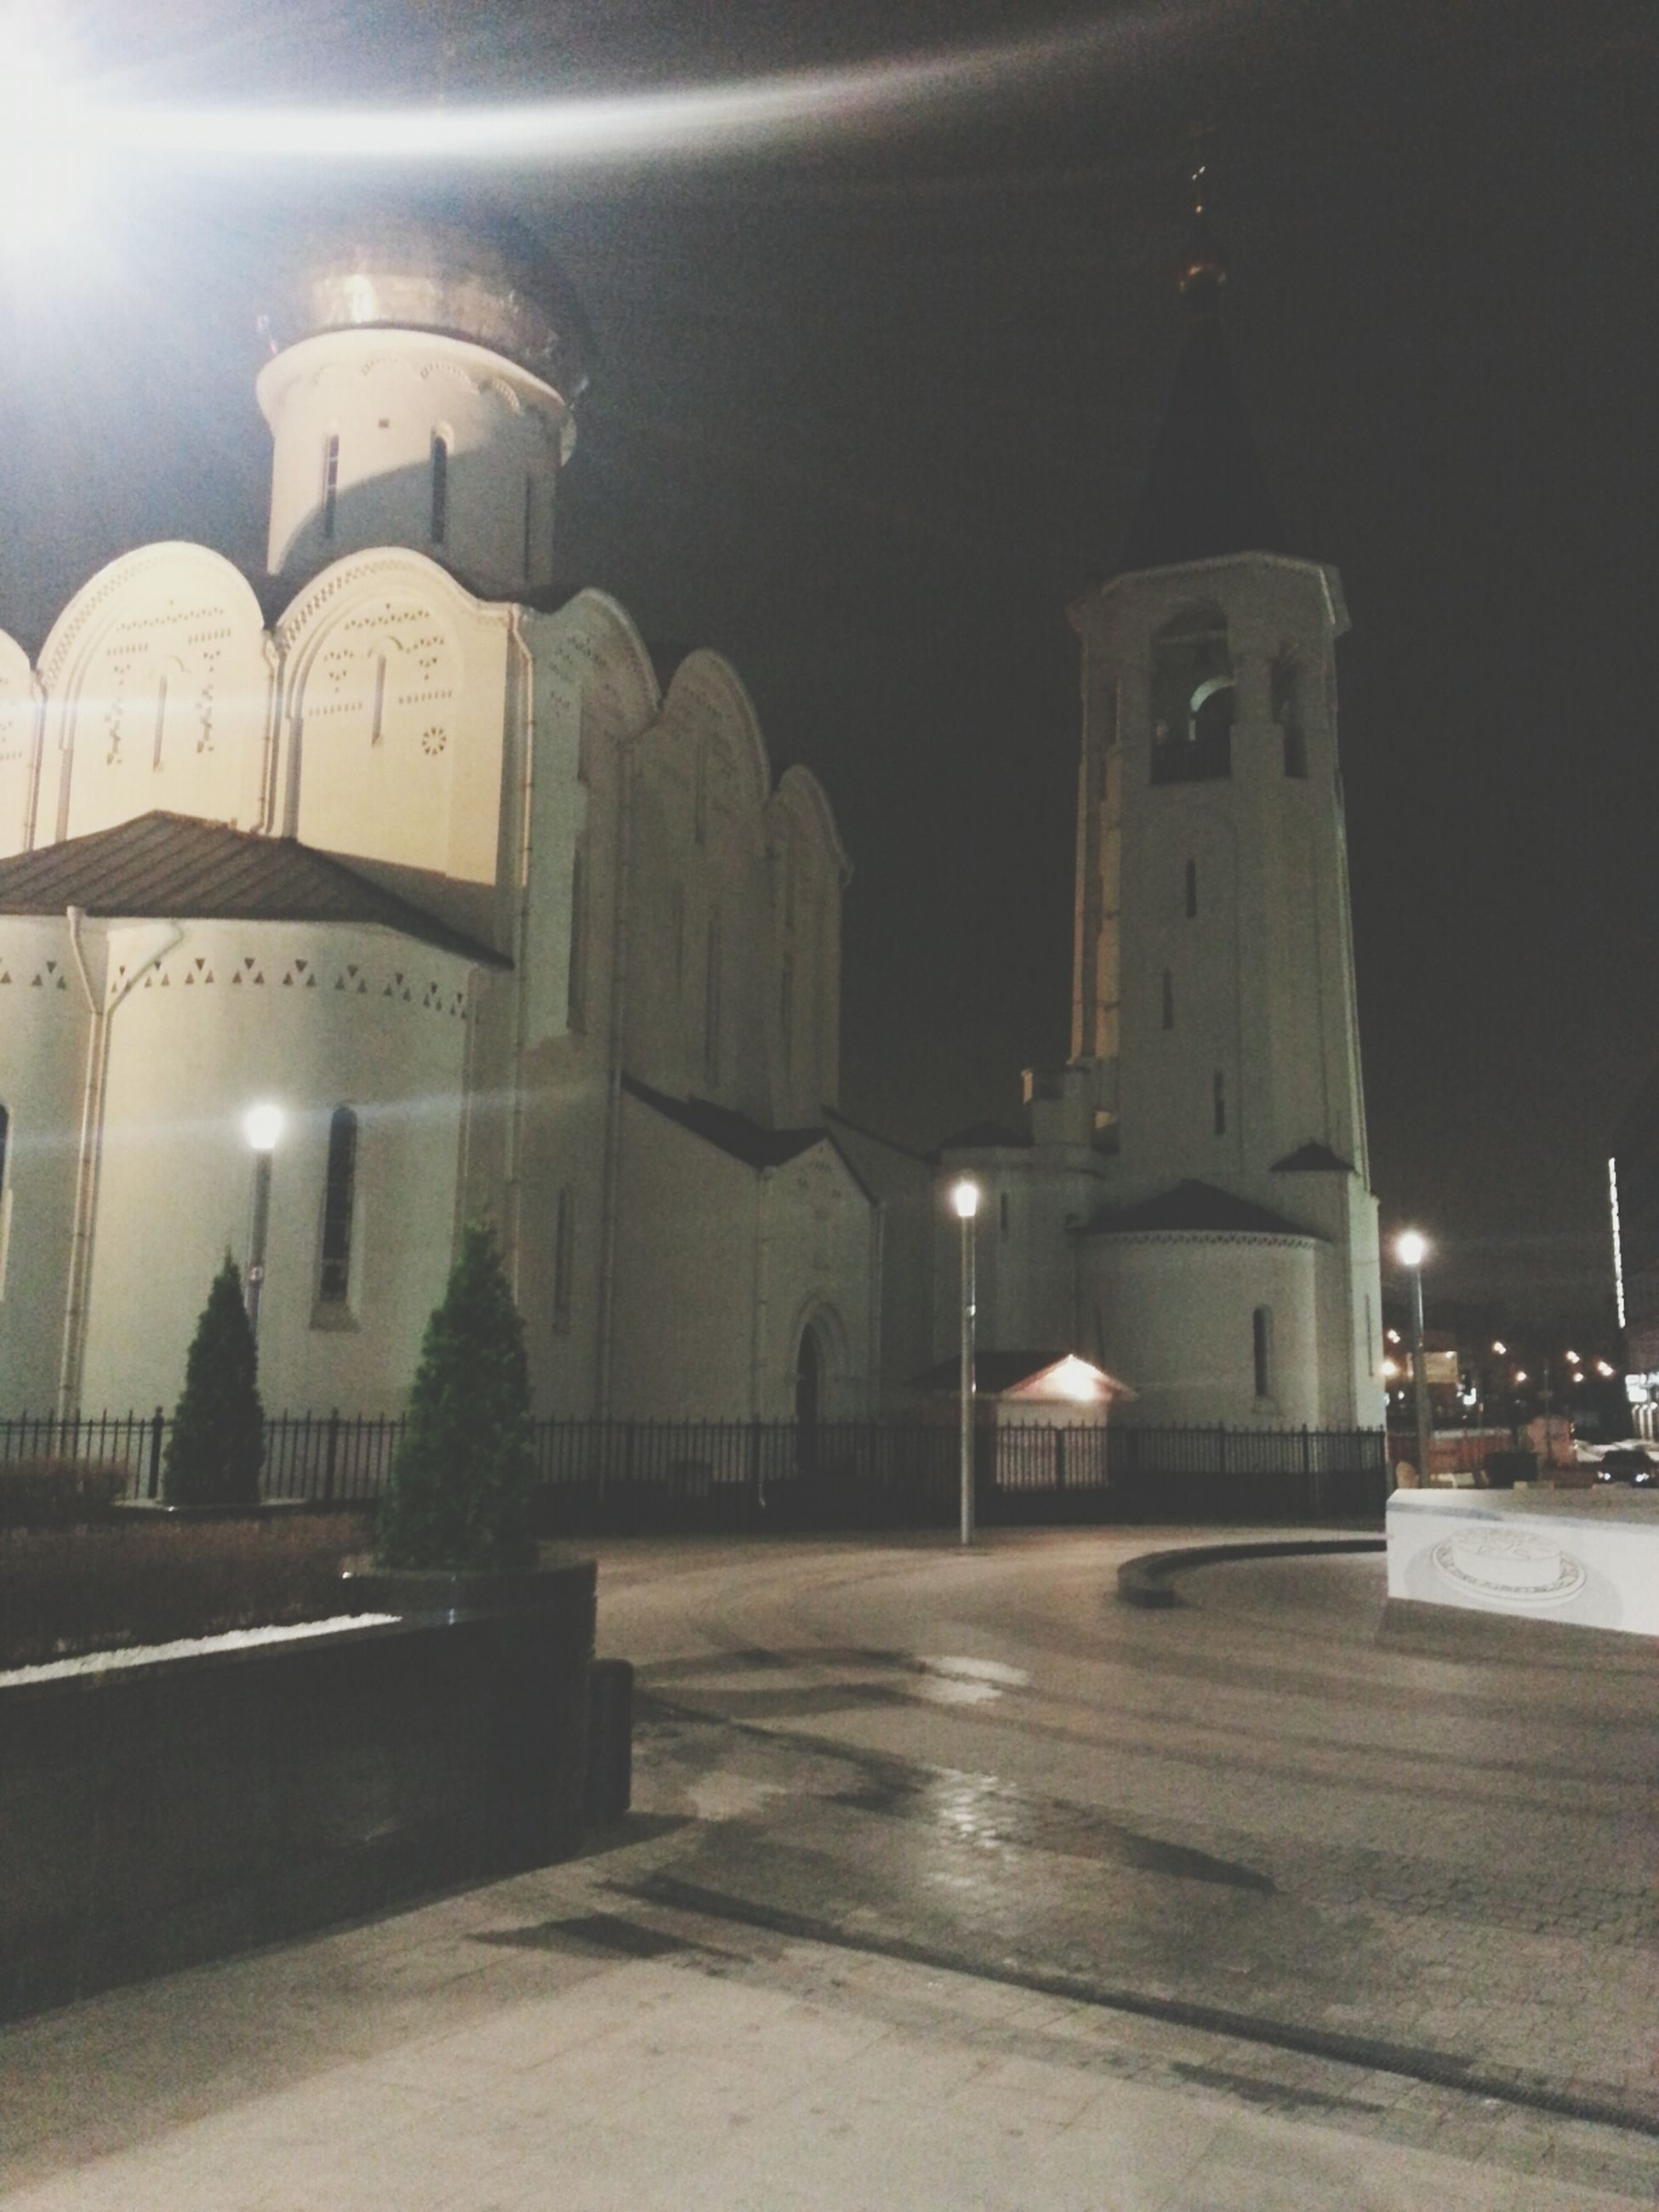 architecture, built structure, illuminated, night, building exterior, church, religion, lighting equipment, street light, place of worship, spirituality, clear sky, dome, road, street, travel destinations, city, the way forward